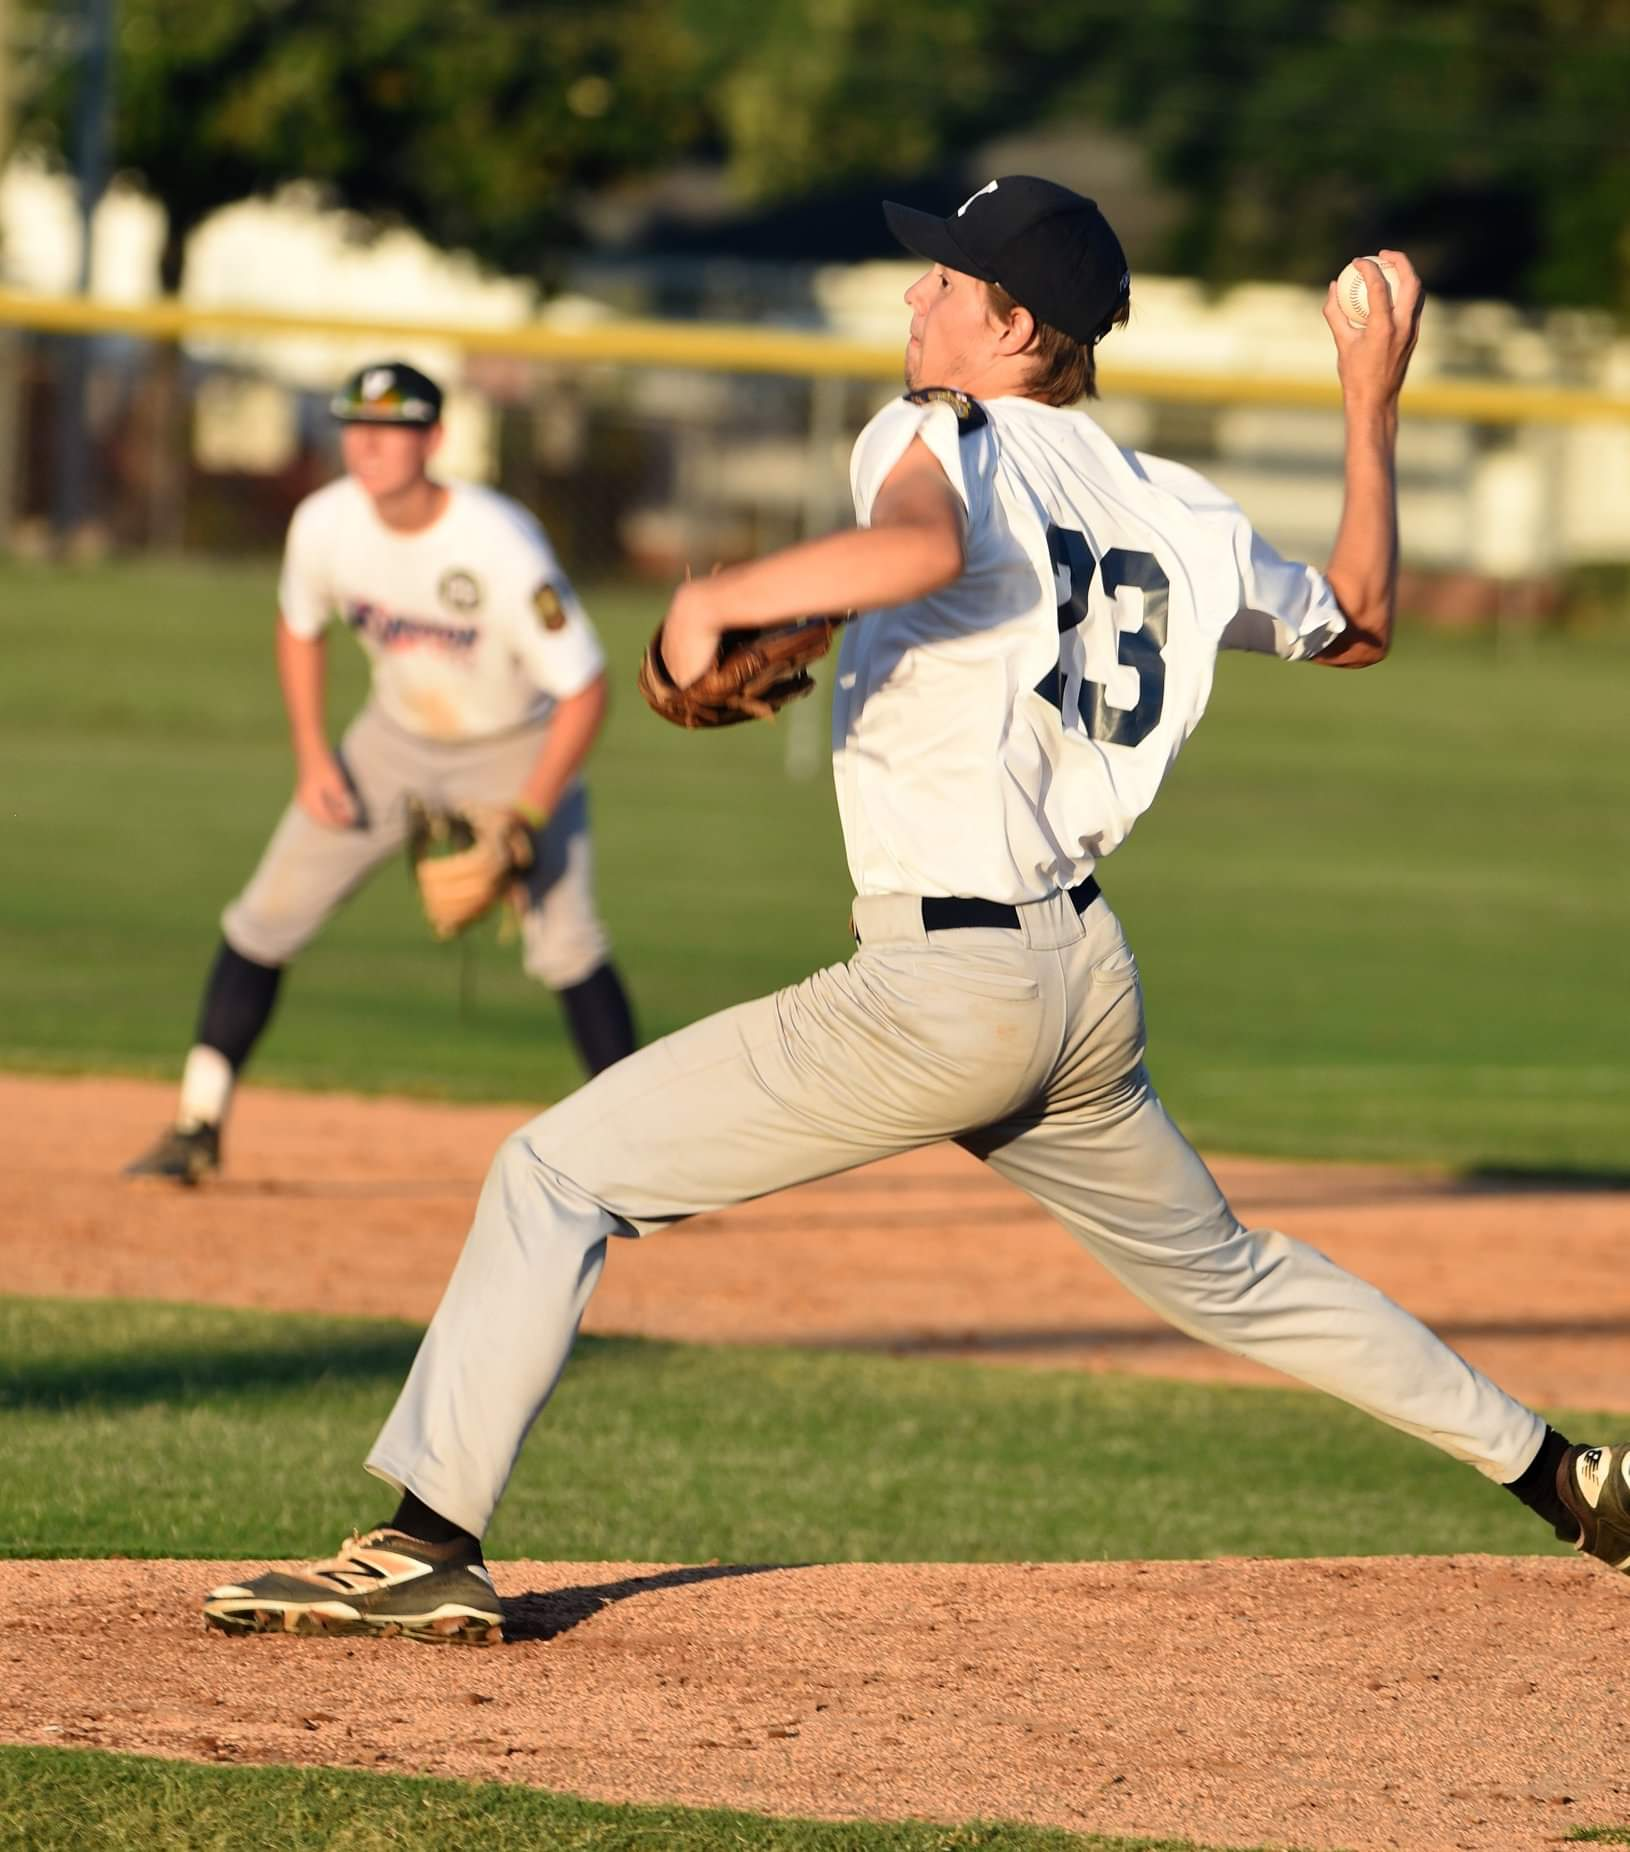 Kinston Post 43's Trevor Sears pitched a complete game as the team improved to 4-1 on the season. Photo by William 'Bud' Hardy / Neuse News